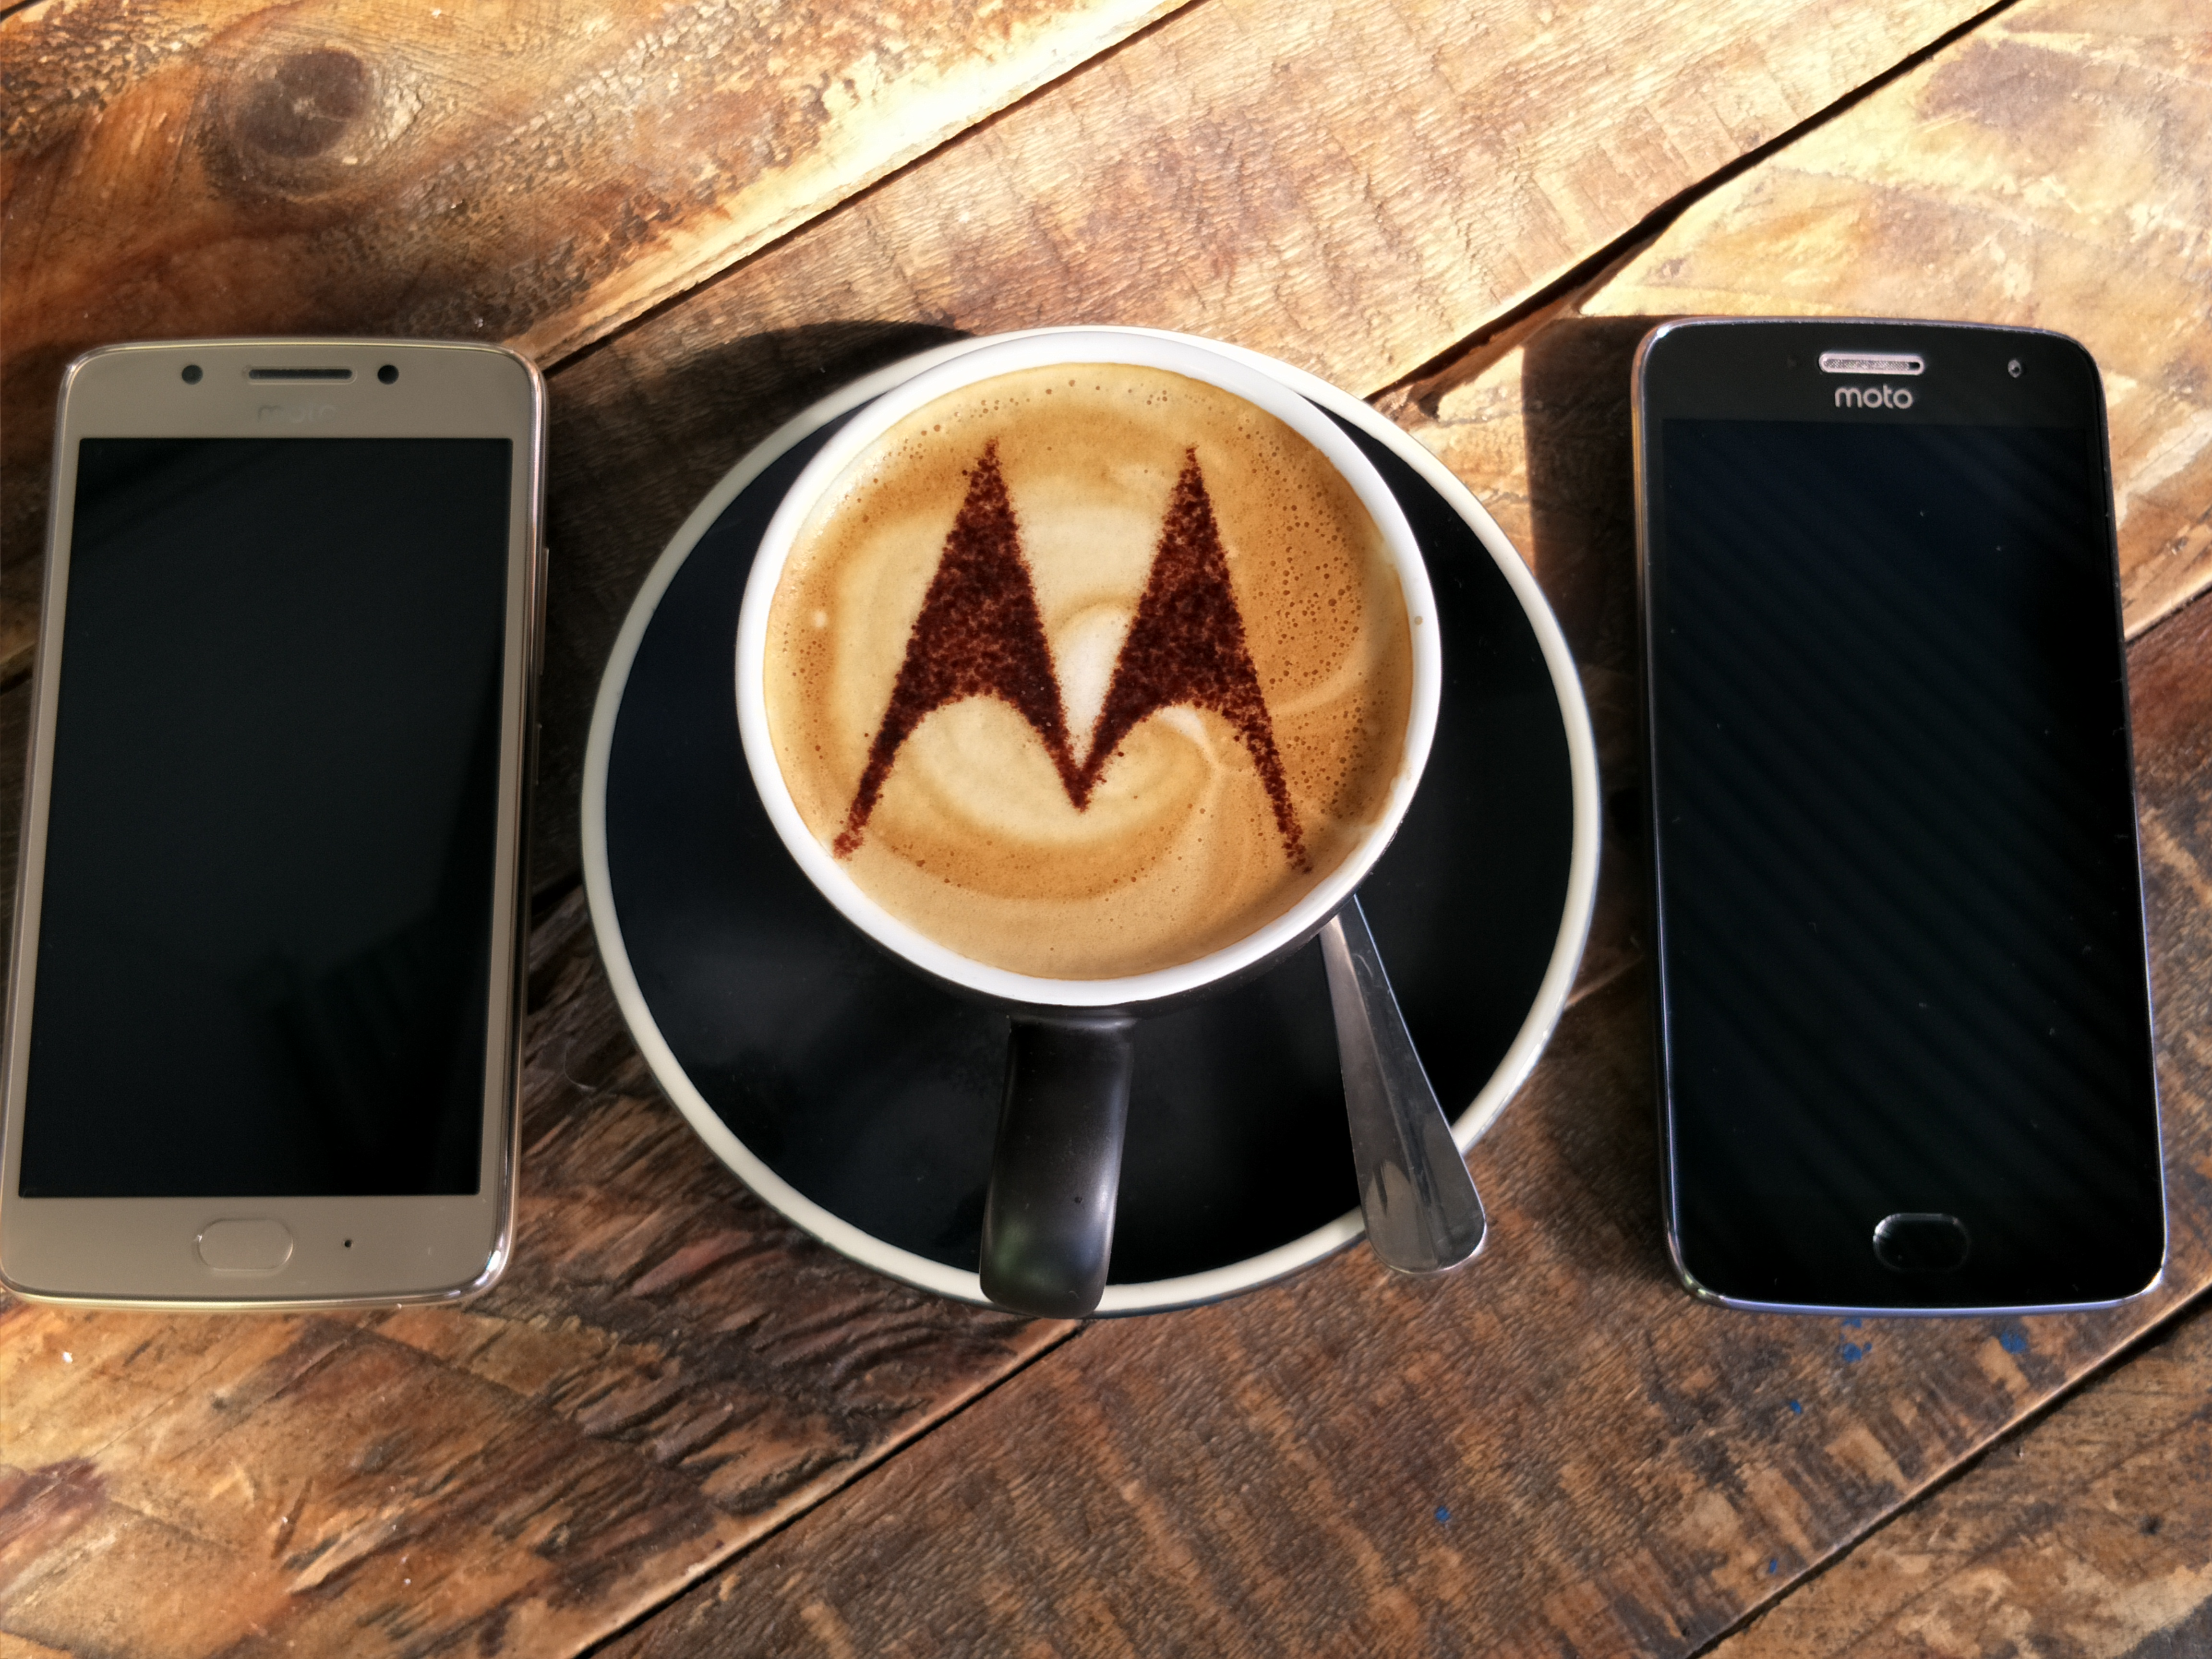 Motorola G5 and G5s series phones receive Android 8 1 update